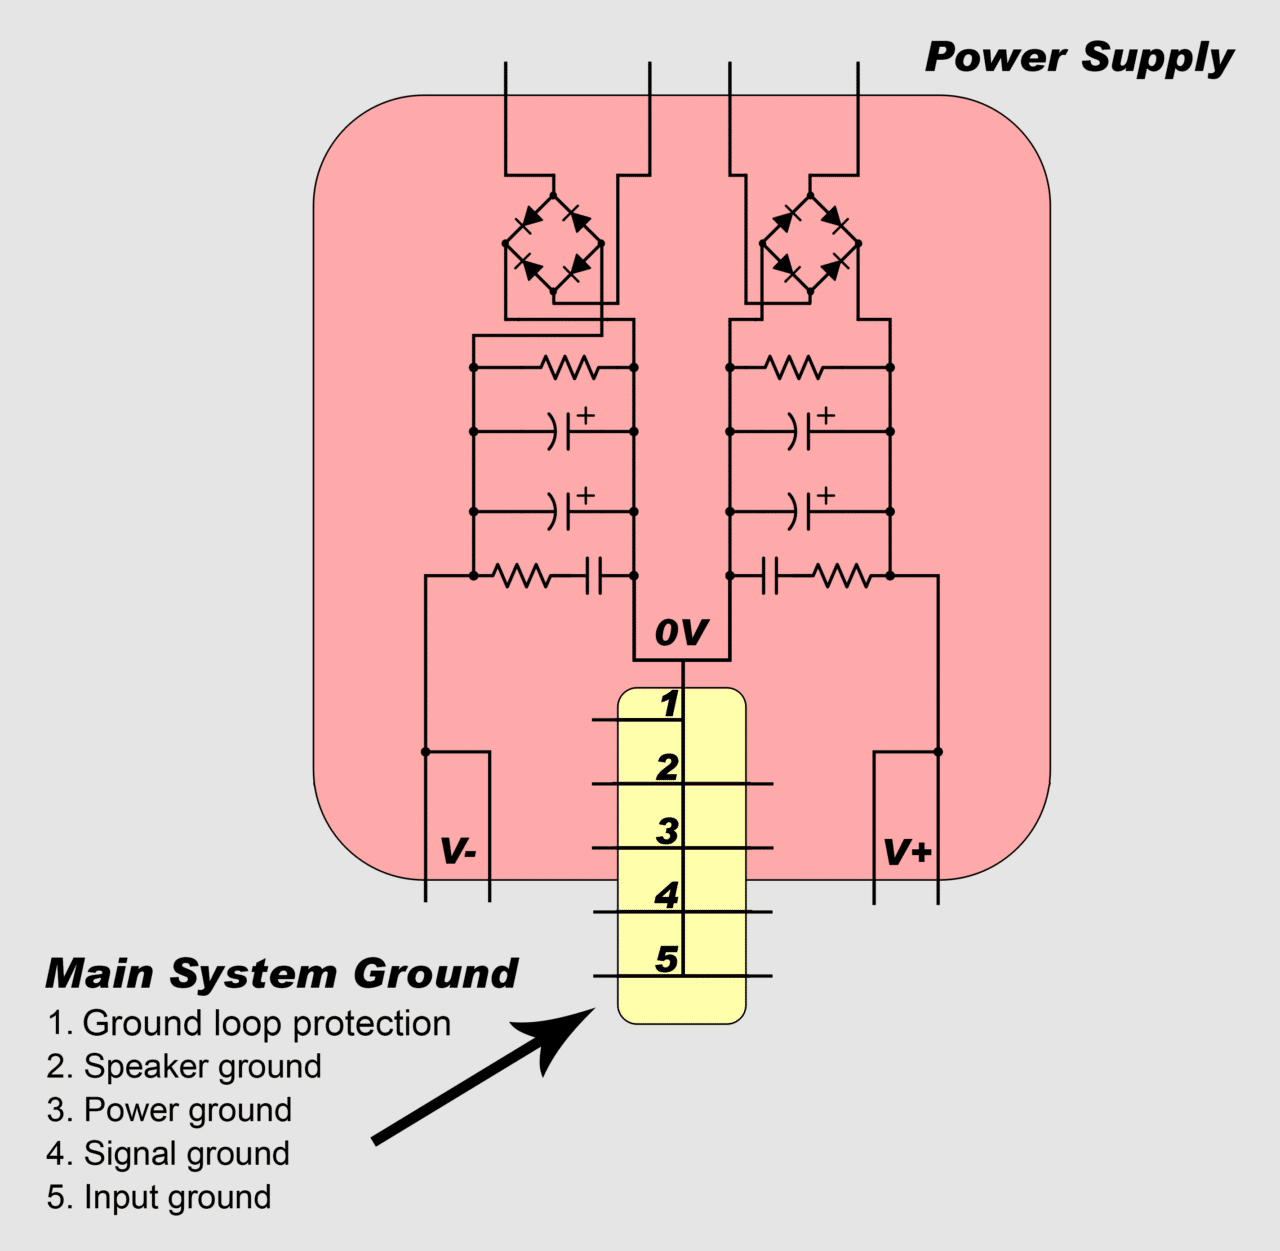 A Complete Guide To Design And Build Hi Fi Lm3886 Amplifier Controller Circuit Diagram On Schematic Symbol For Heater Panel Main System Ground So That Higher Current Grounds Are Closer The Reservoir Capacitors Below Shows How Order Connections